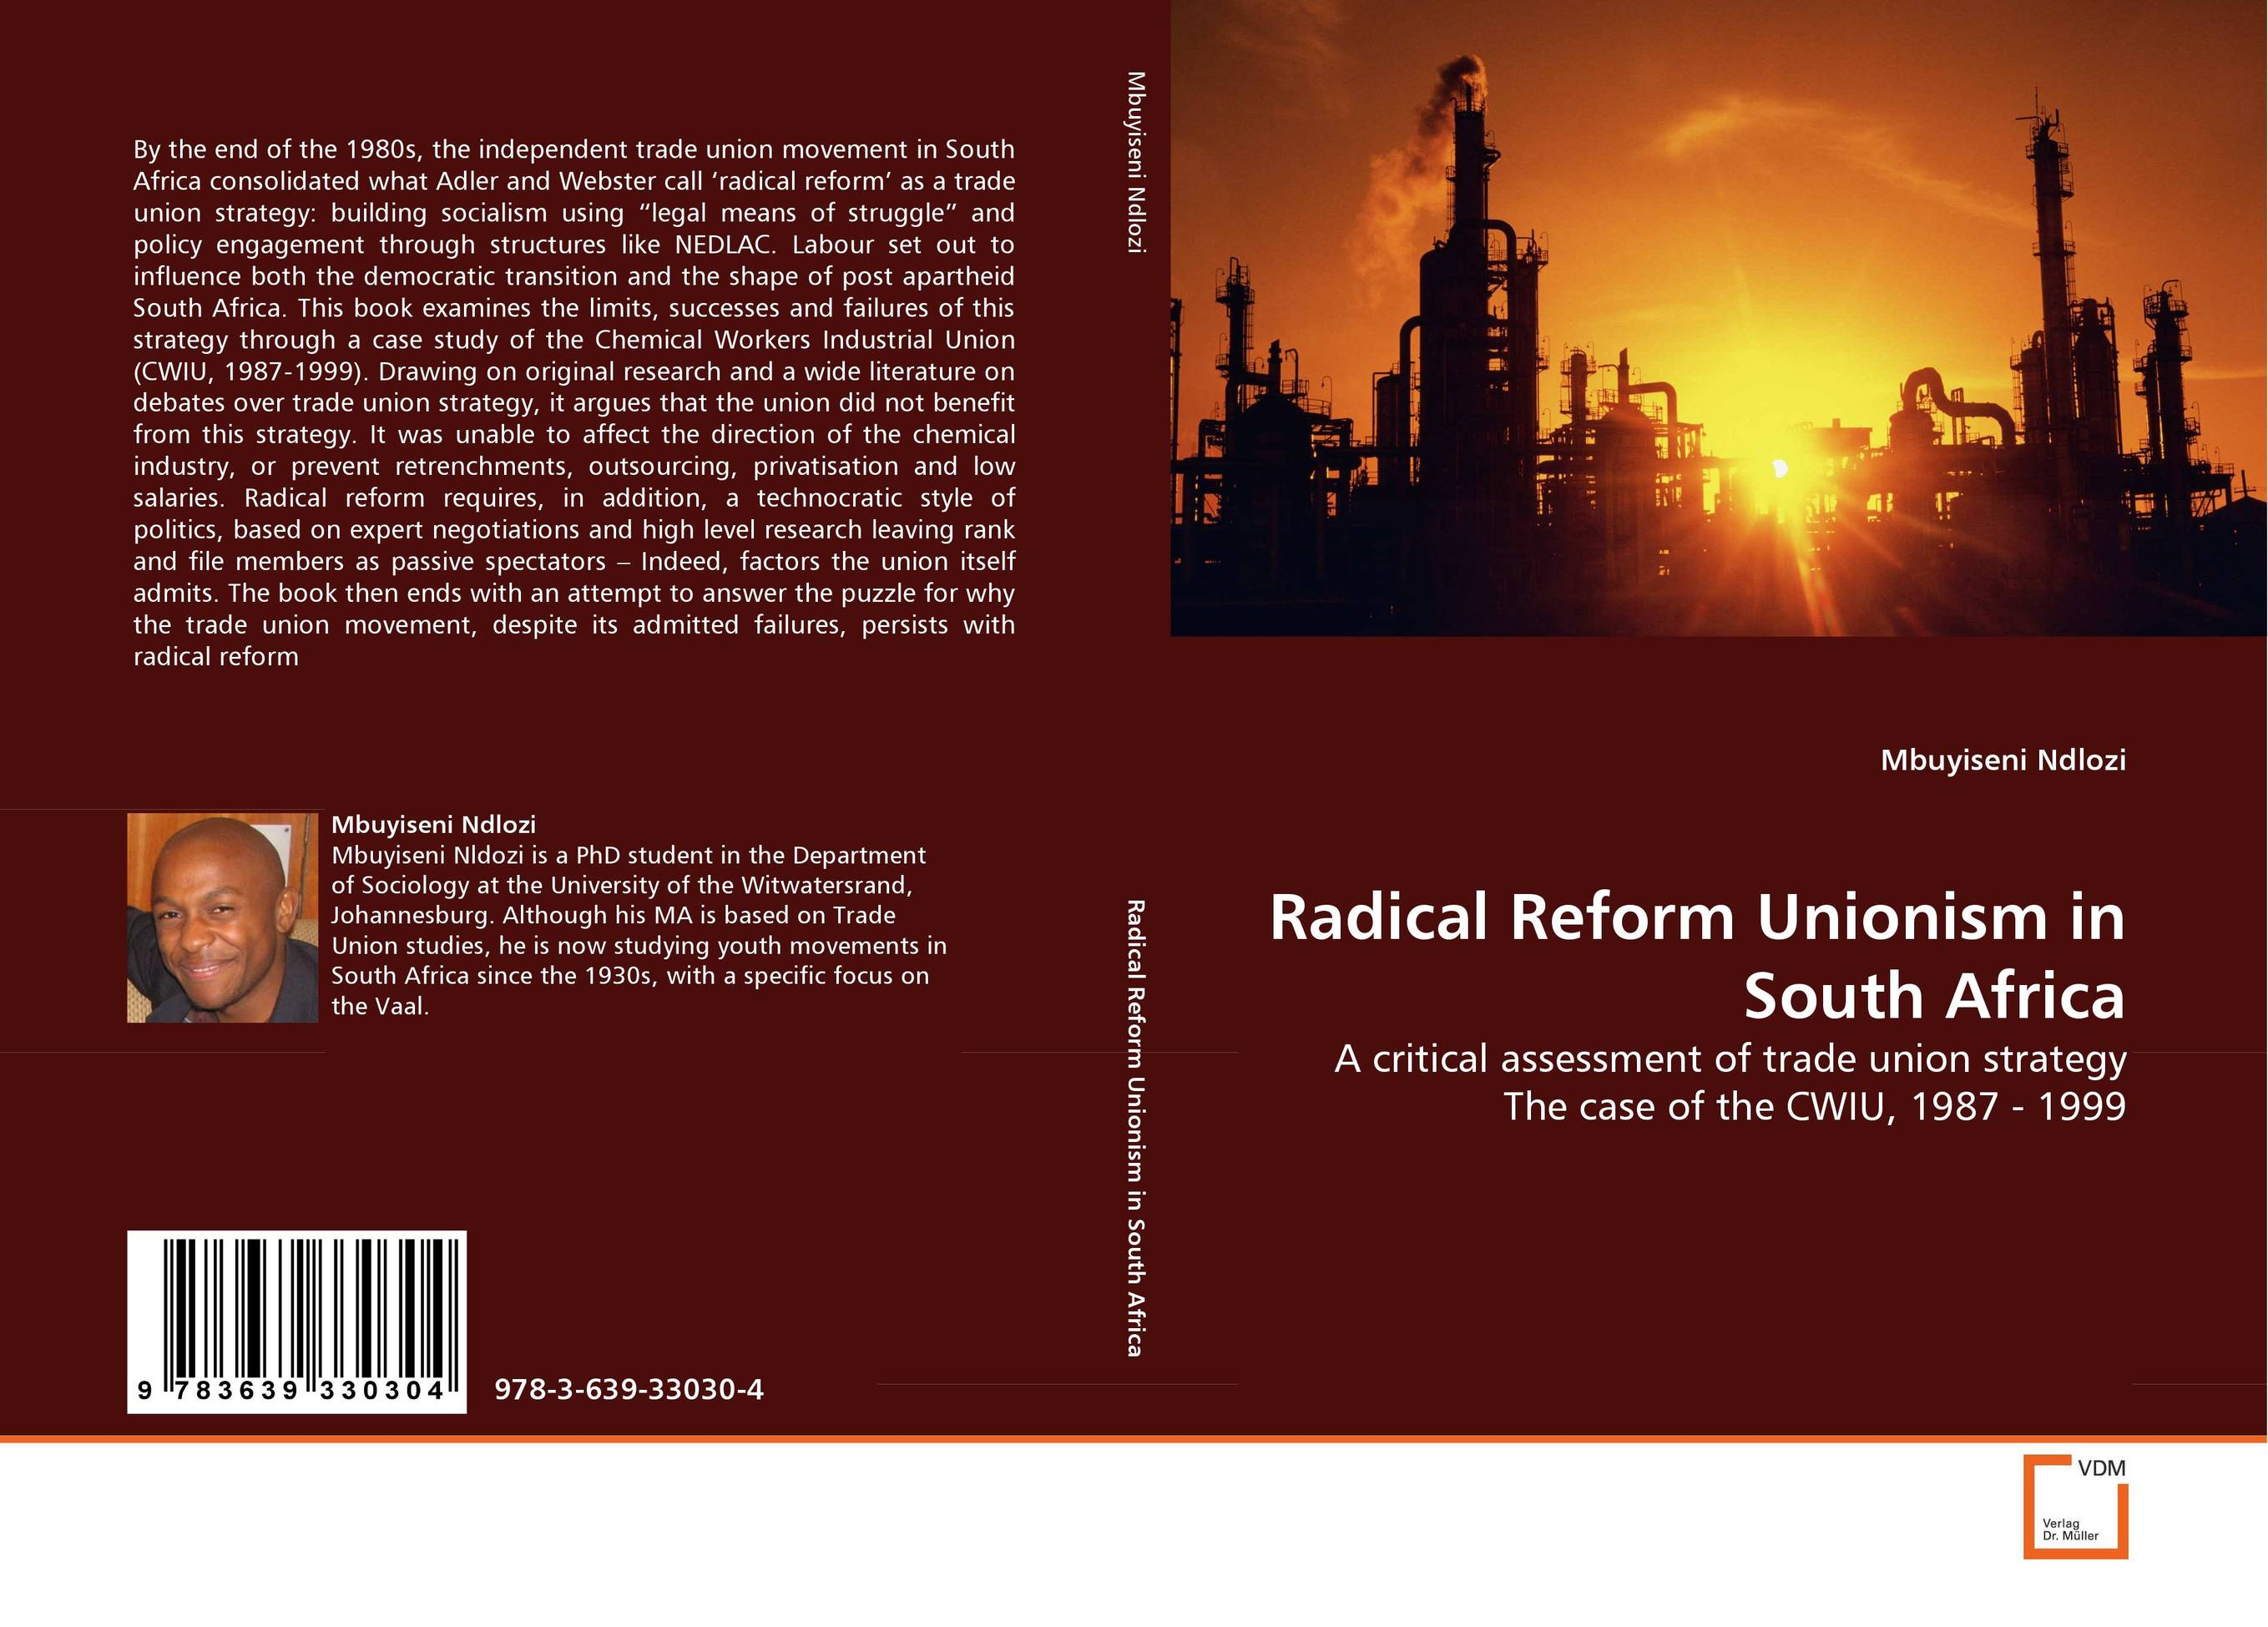 Radical Reform Unionism in South Africa duncan bruce the dream cafe lessons in the art of radical innovation